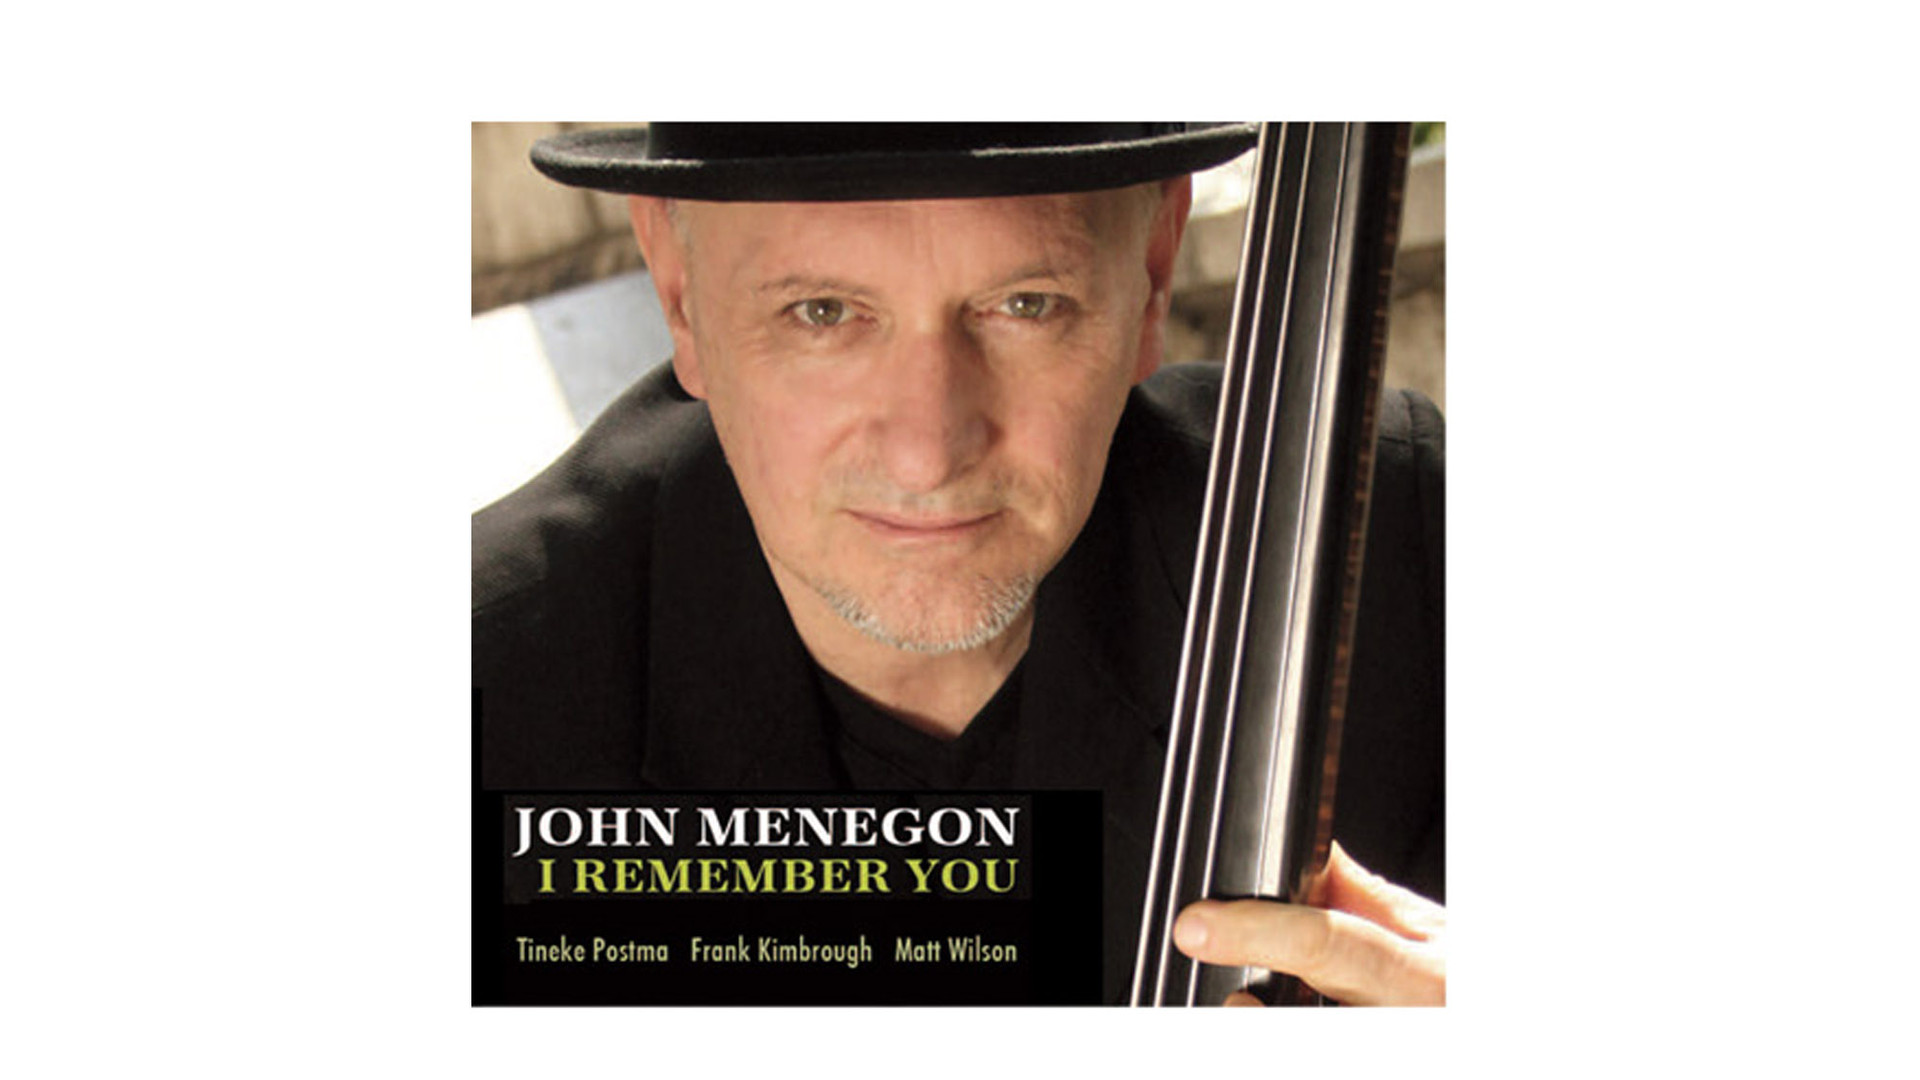 John Menegon - I Remember You